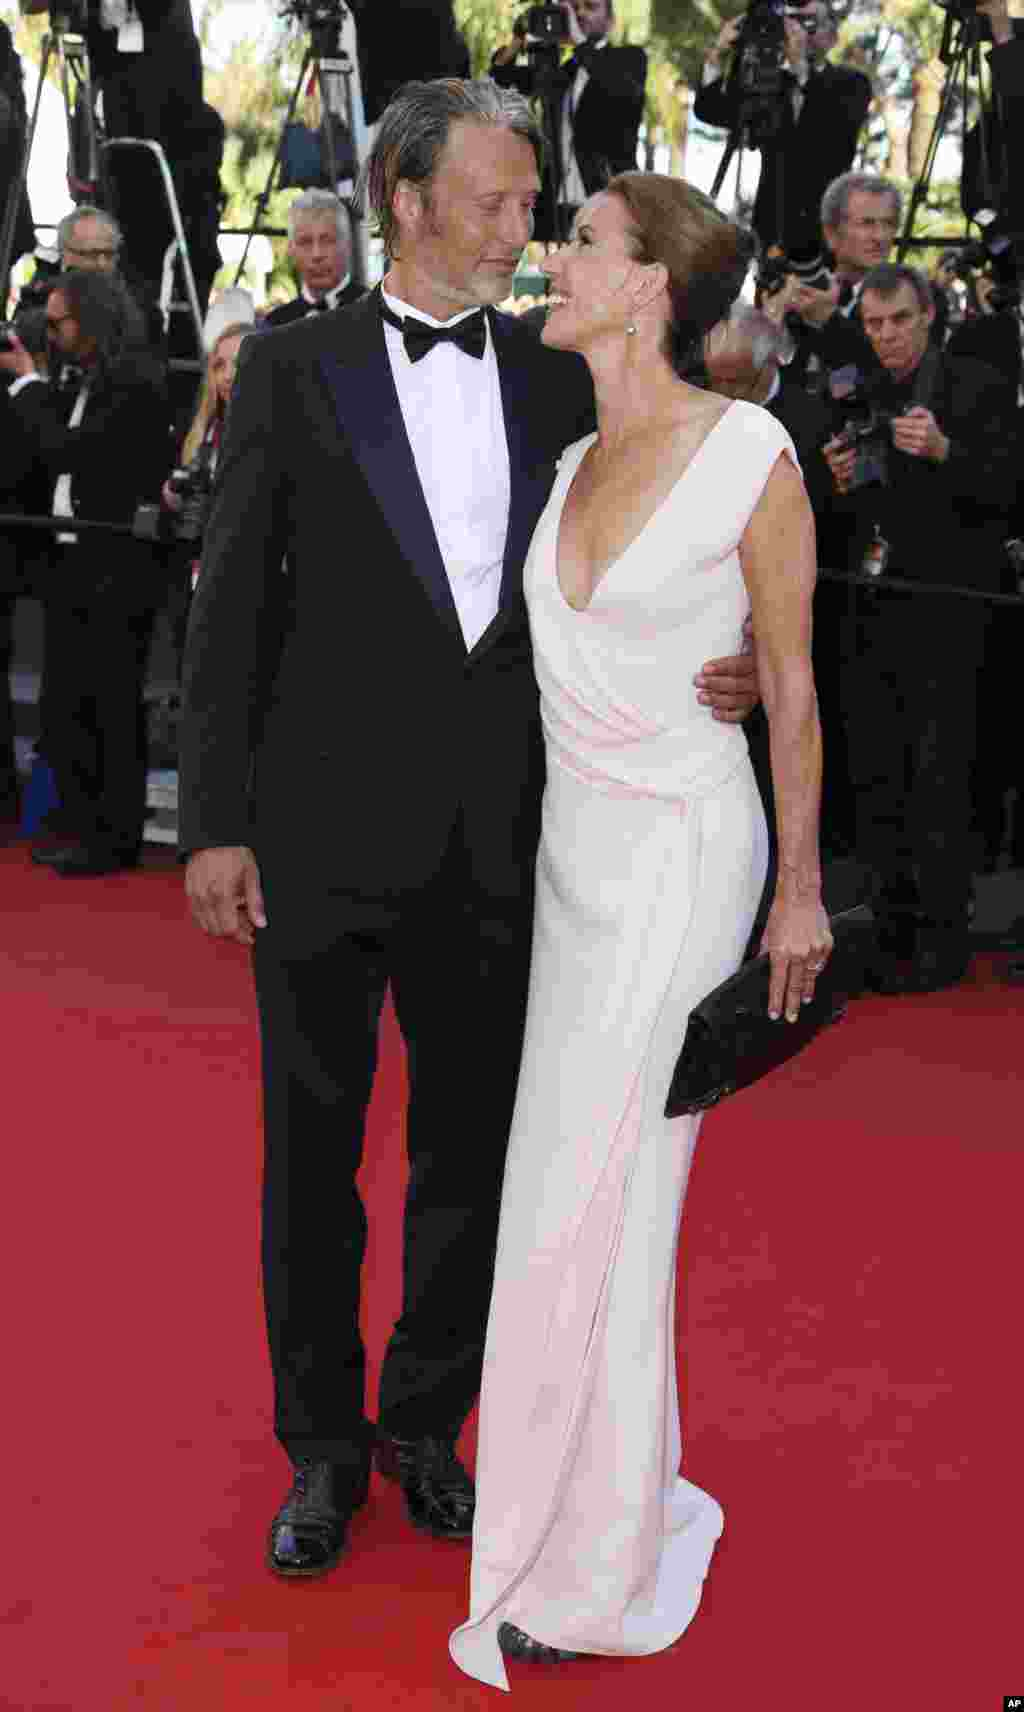 Actor Mads Mikkelsen and his wife Hanne Jacobsen arrive for the awards ceremony of the66th Cannes Film Festival, May 26, 2013.